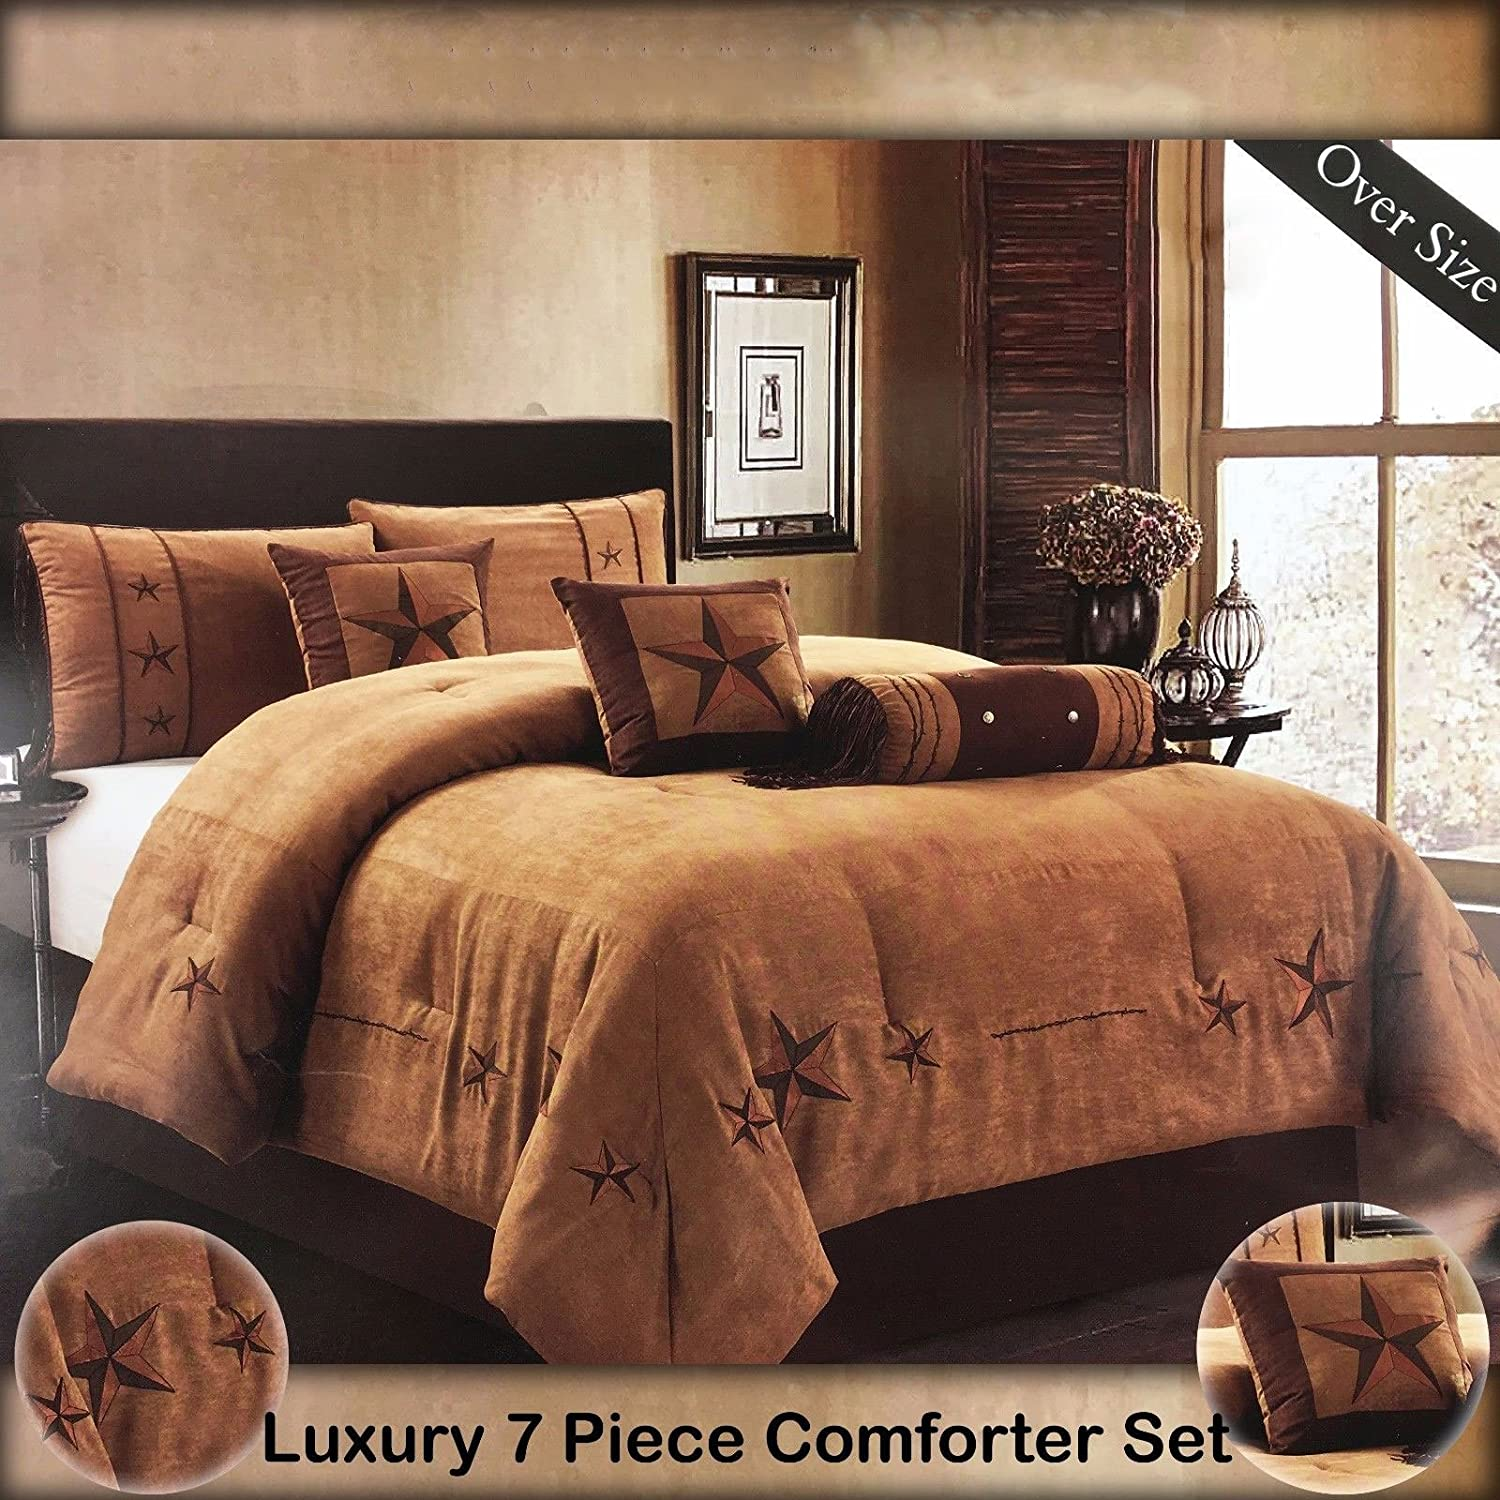 Western Peak Oversize Embroidery Texas Western Lone Star Micro Suede Comforter Bedding 7 Piece Set Shams Bed Skirt (Oversize King, Brown Turquoise) WPNBETBRK